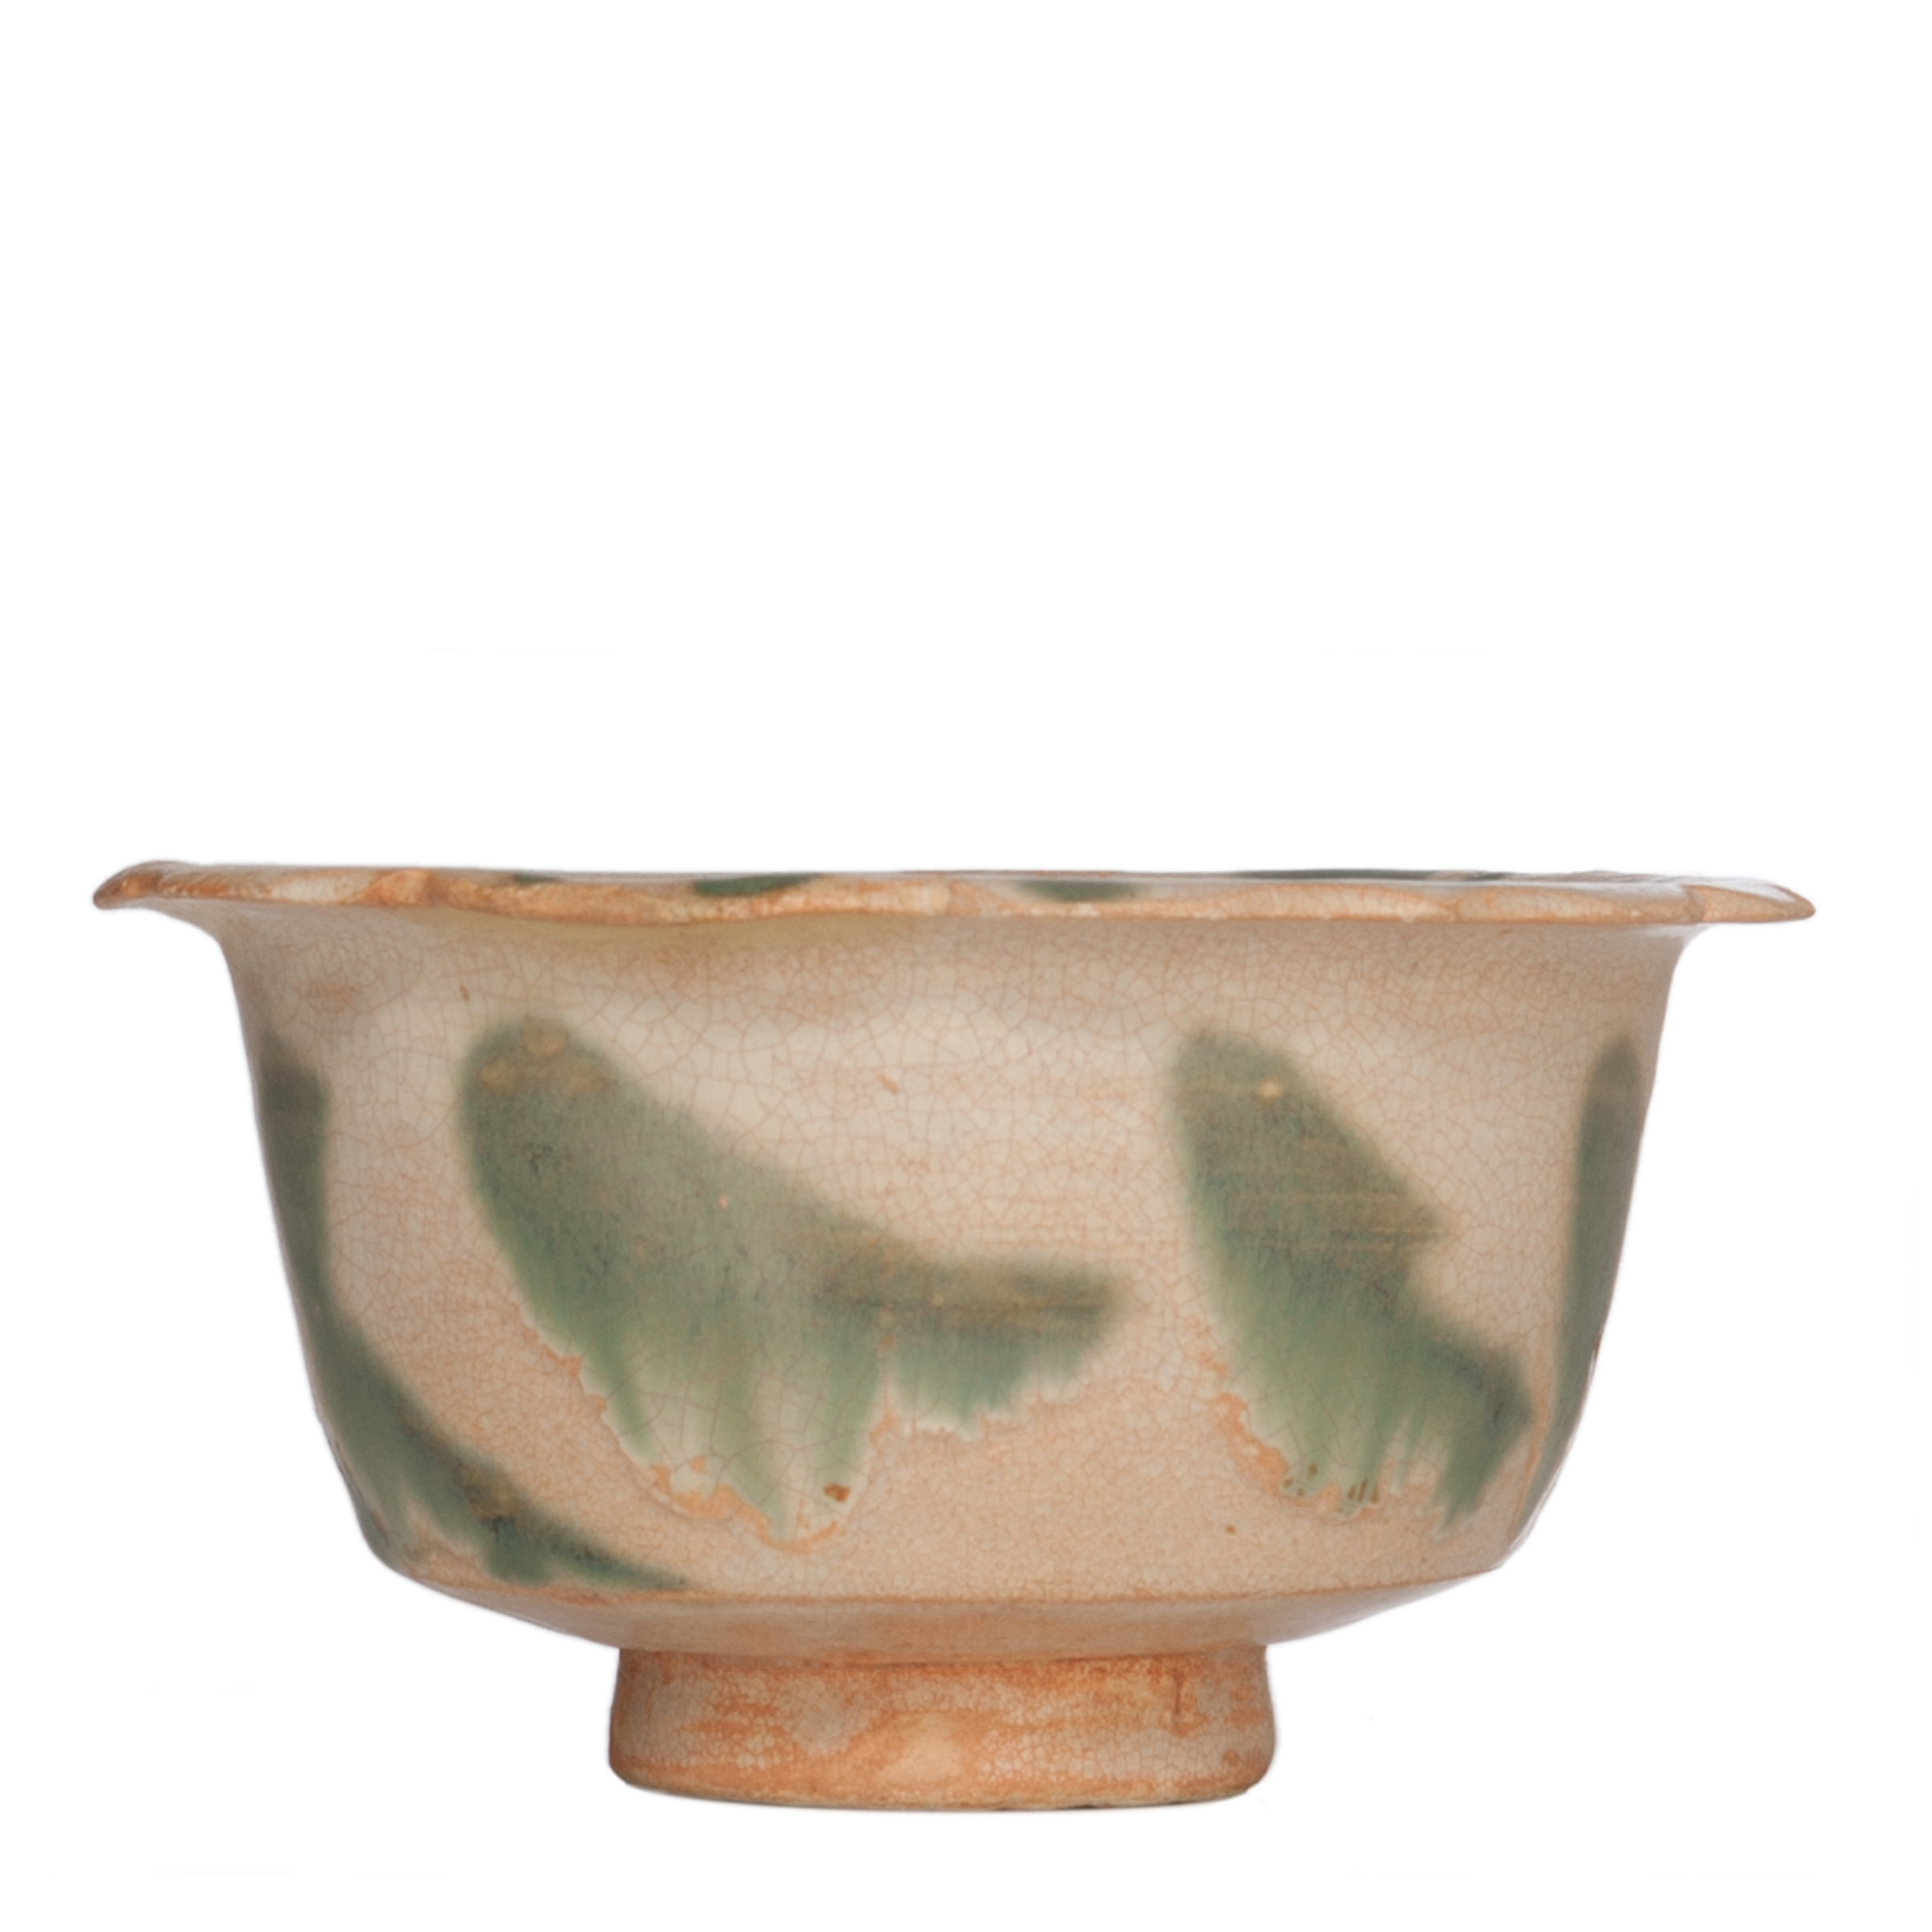 Unusual Chinese Pottery Bowl With Cream Coloured Glaze And Copper Green Splashes From Changsha The Shape Is Probably Based On An Islamic Metal Eample Artlistings